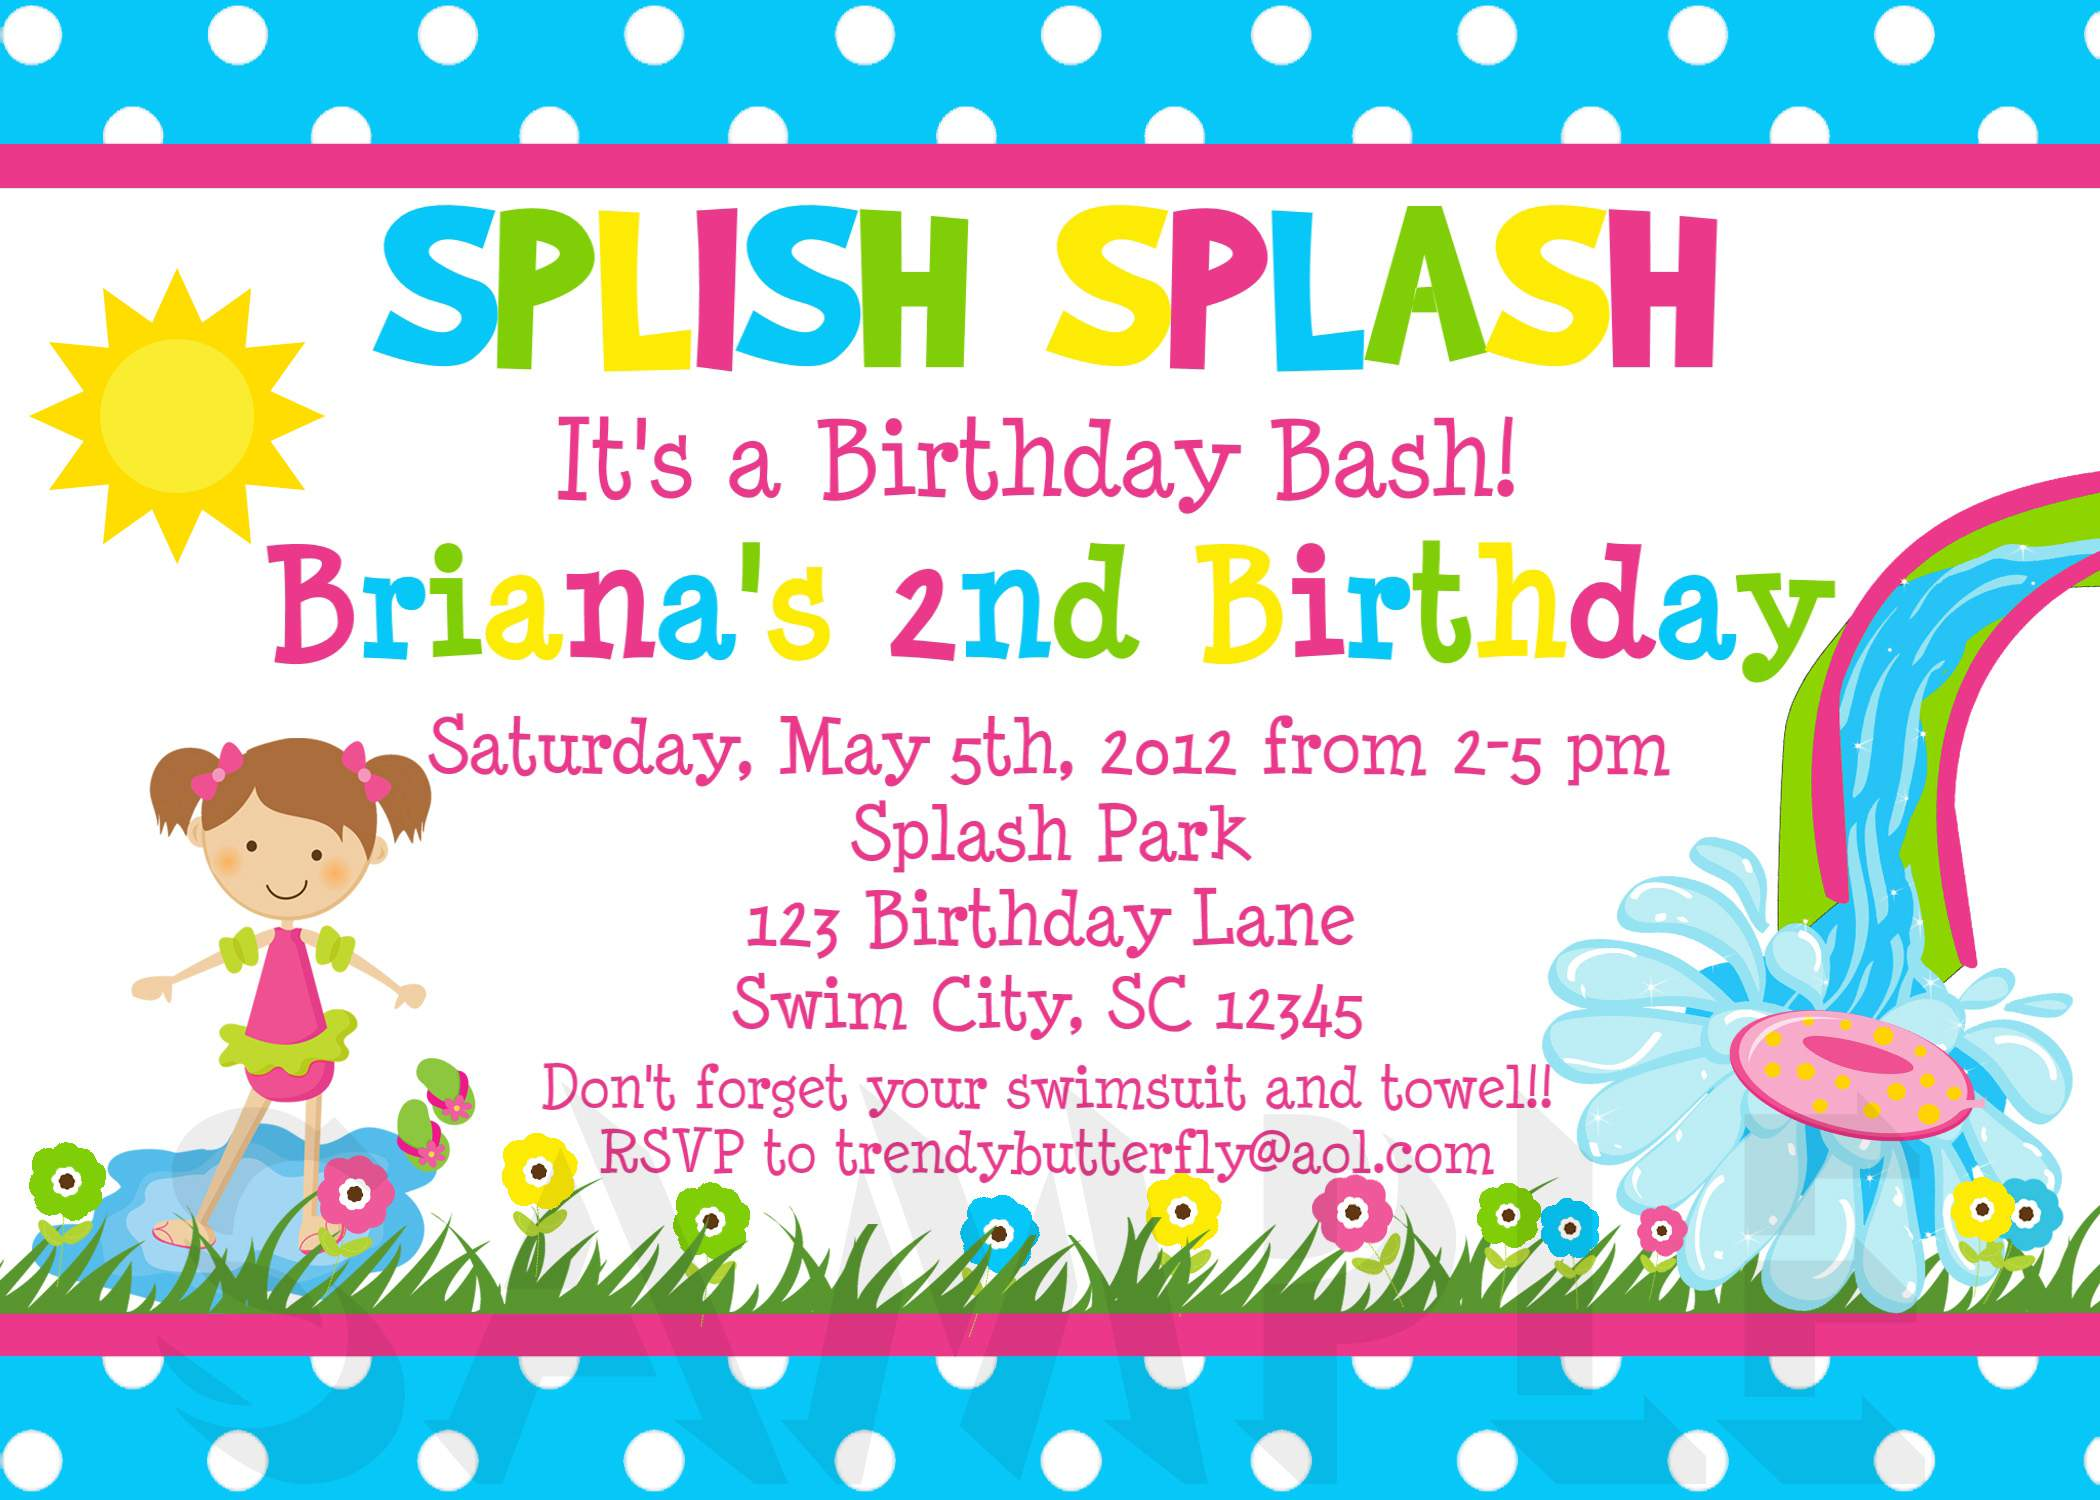 free printable birthday invitations for kids ; stunning-free-printable-kids-birthday-party-invitations-templates-appealing-Birthday-invitation-sample-available-to-use-for-free-16